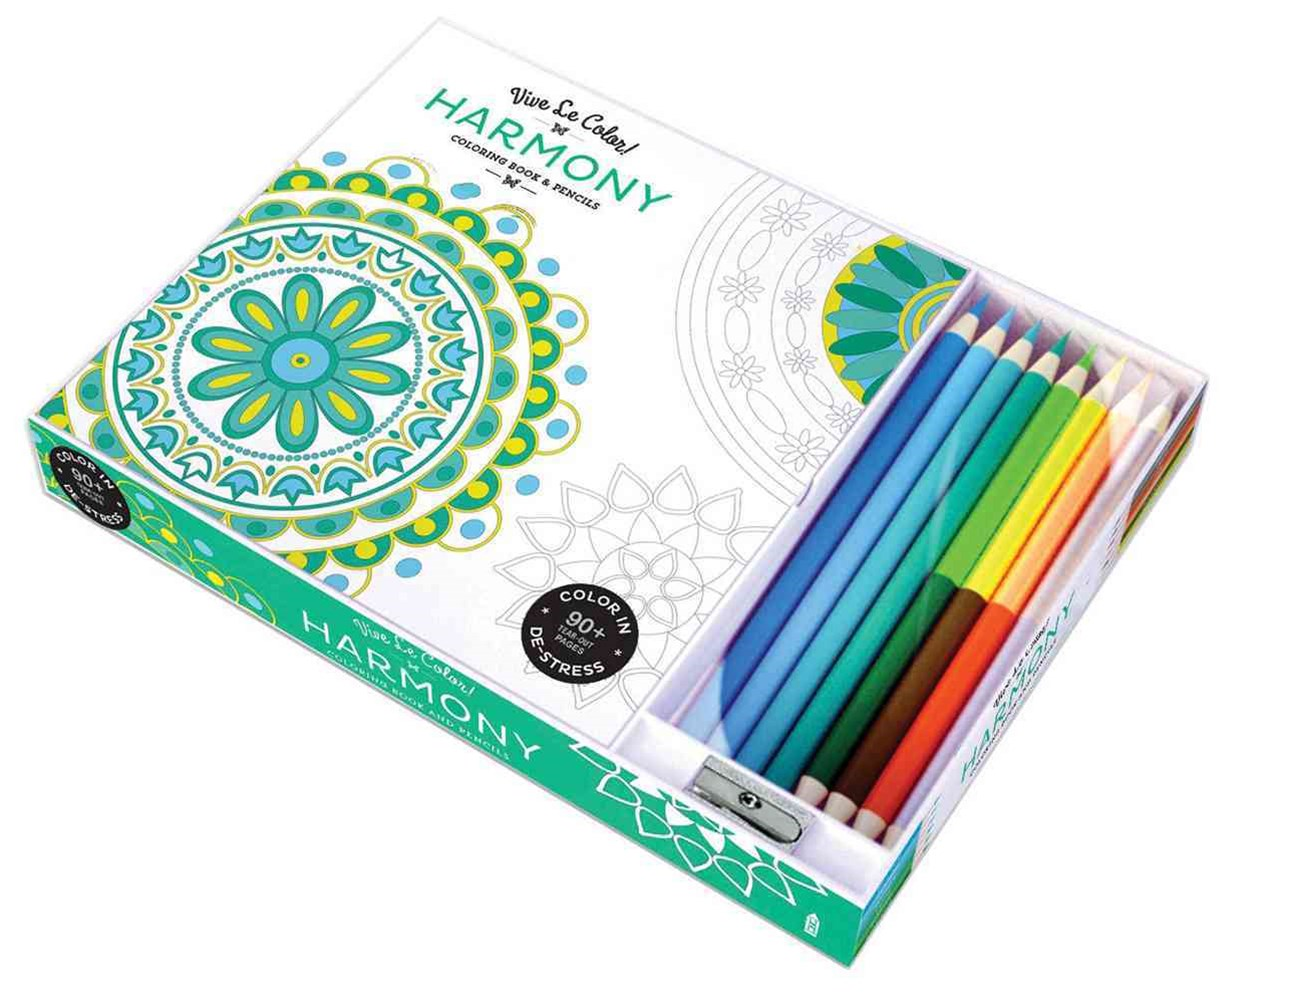 Harmony ( Coloring Book and Pencils ) Color In; Vive Le Color